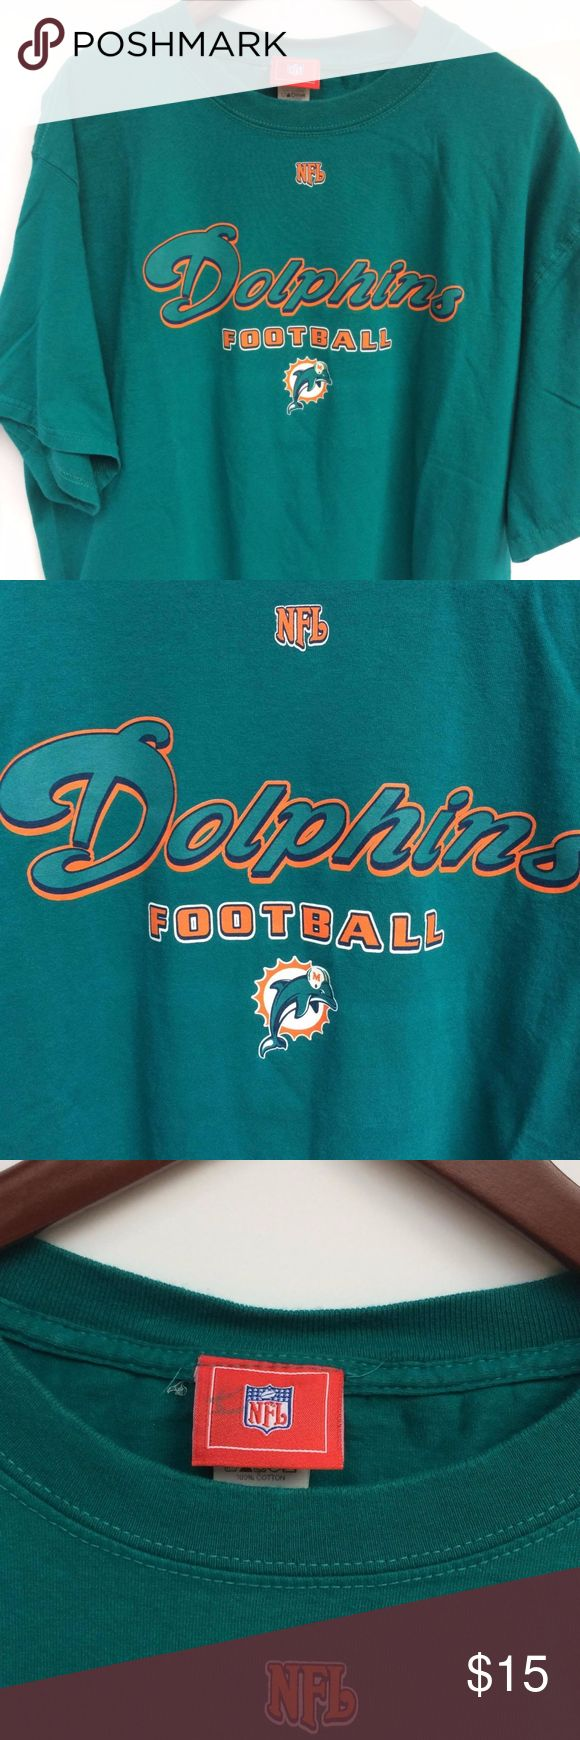 NFL Miami Dolphins Men's Turquoise T-shirt This NFL Miami Dolphins T-shirt is a must have for any Dolphins fan or any football fan to have. This shirt is authentic NFL which ensures you this is a quality T-shirt that you can enjoy for a long time with no worries. This shirt is easily paired with any pants or shorts you might already have. The simplicity of this shirt is what makes it so easy to wear when ever where ever. NFL Shirts Tees - Short Sleeve